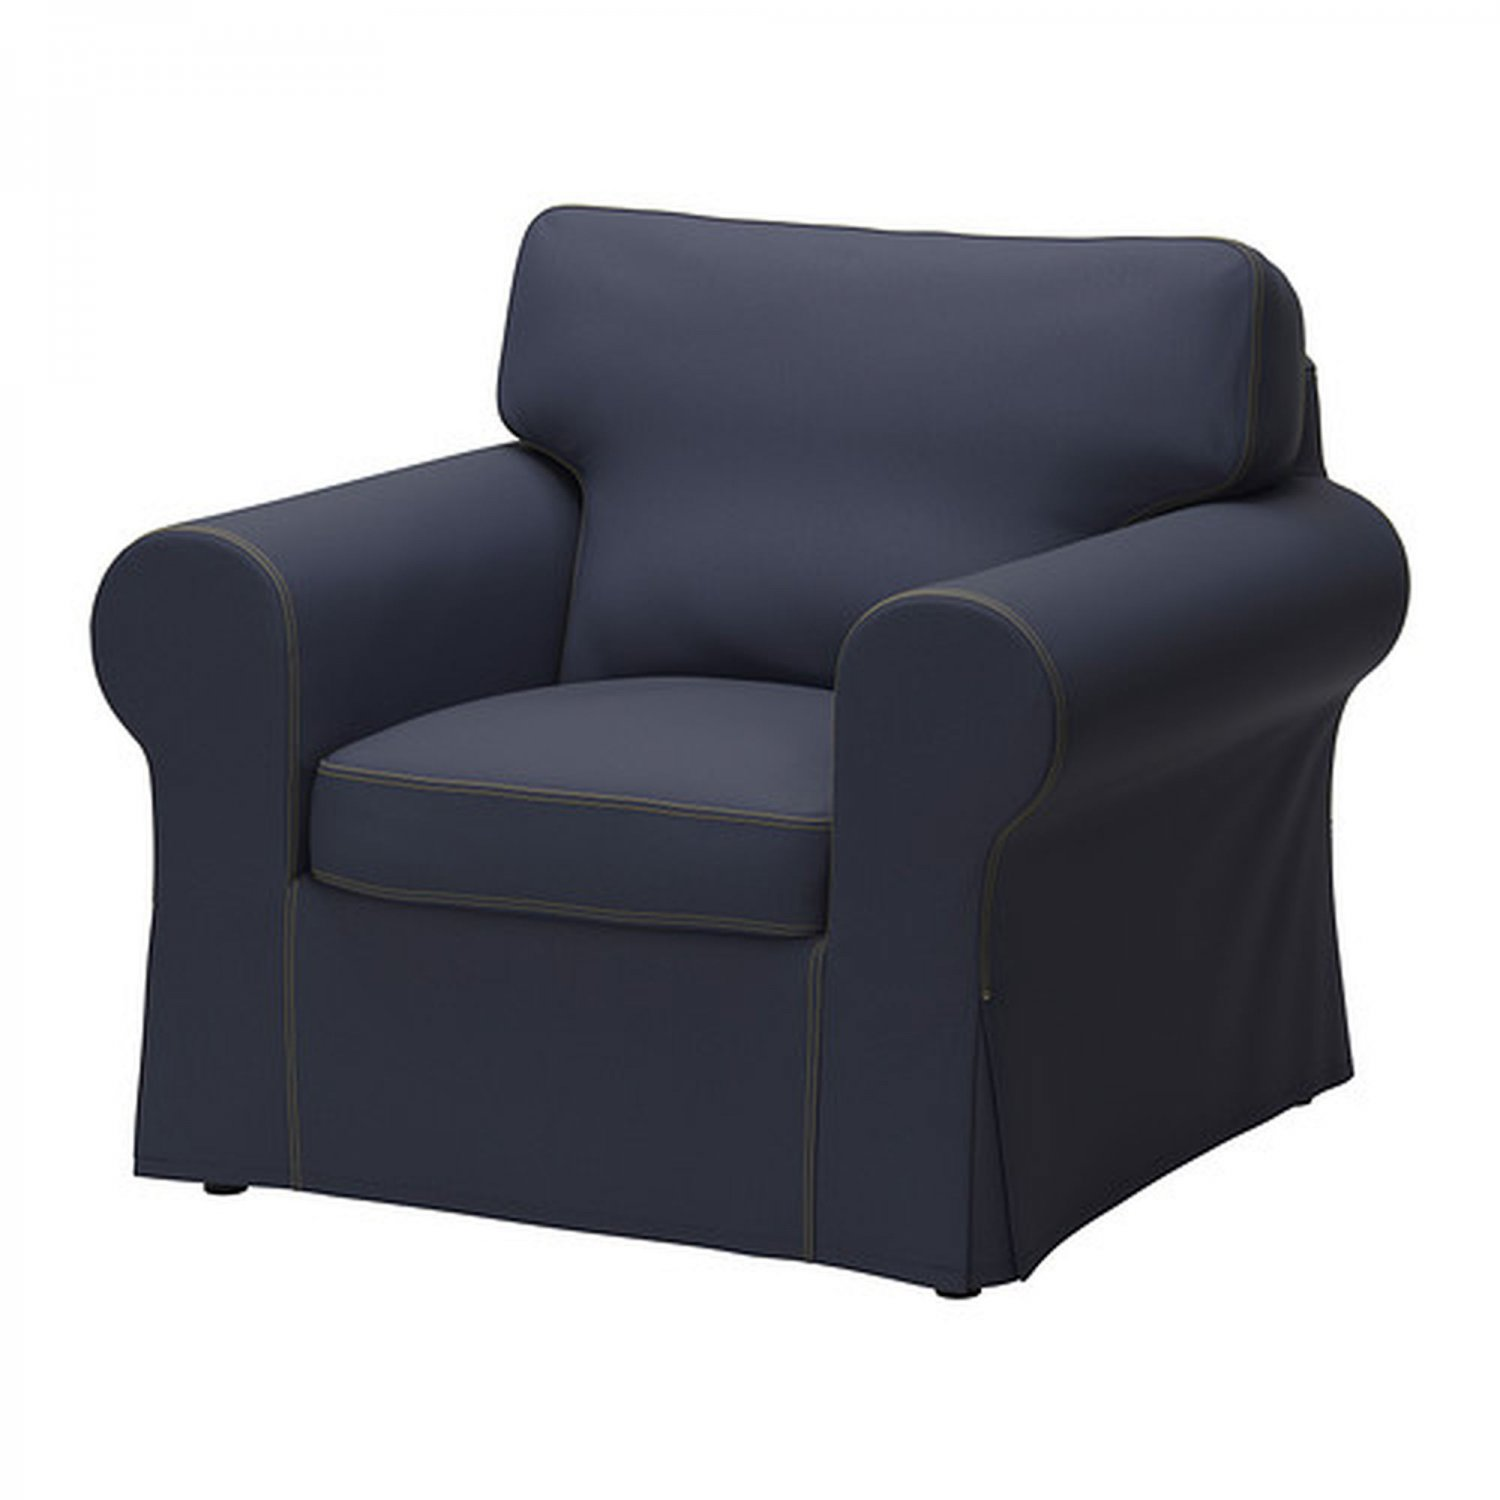 ikea arm chairs swivel shower chair with back and arms ektorp armchair cover slipcover jonsboda blue denim